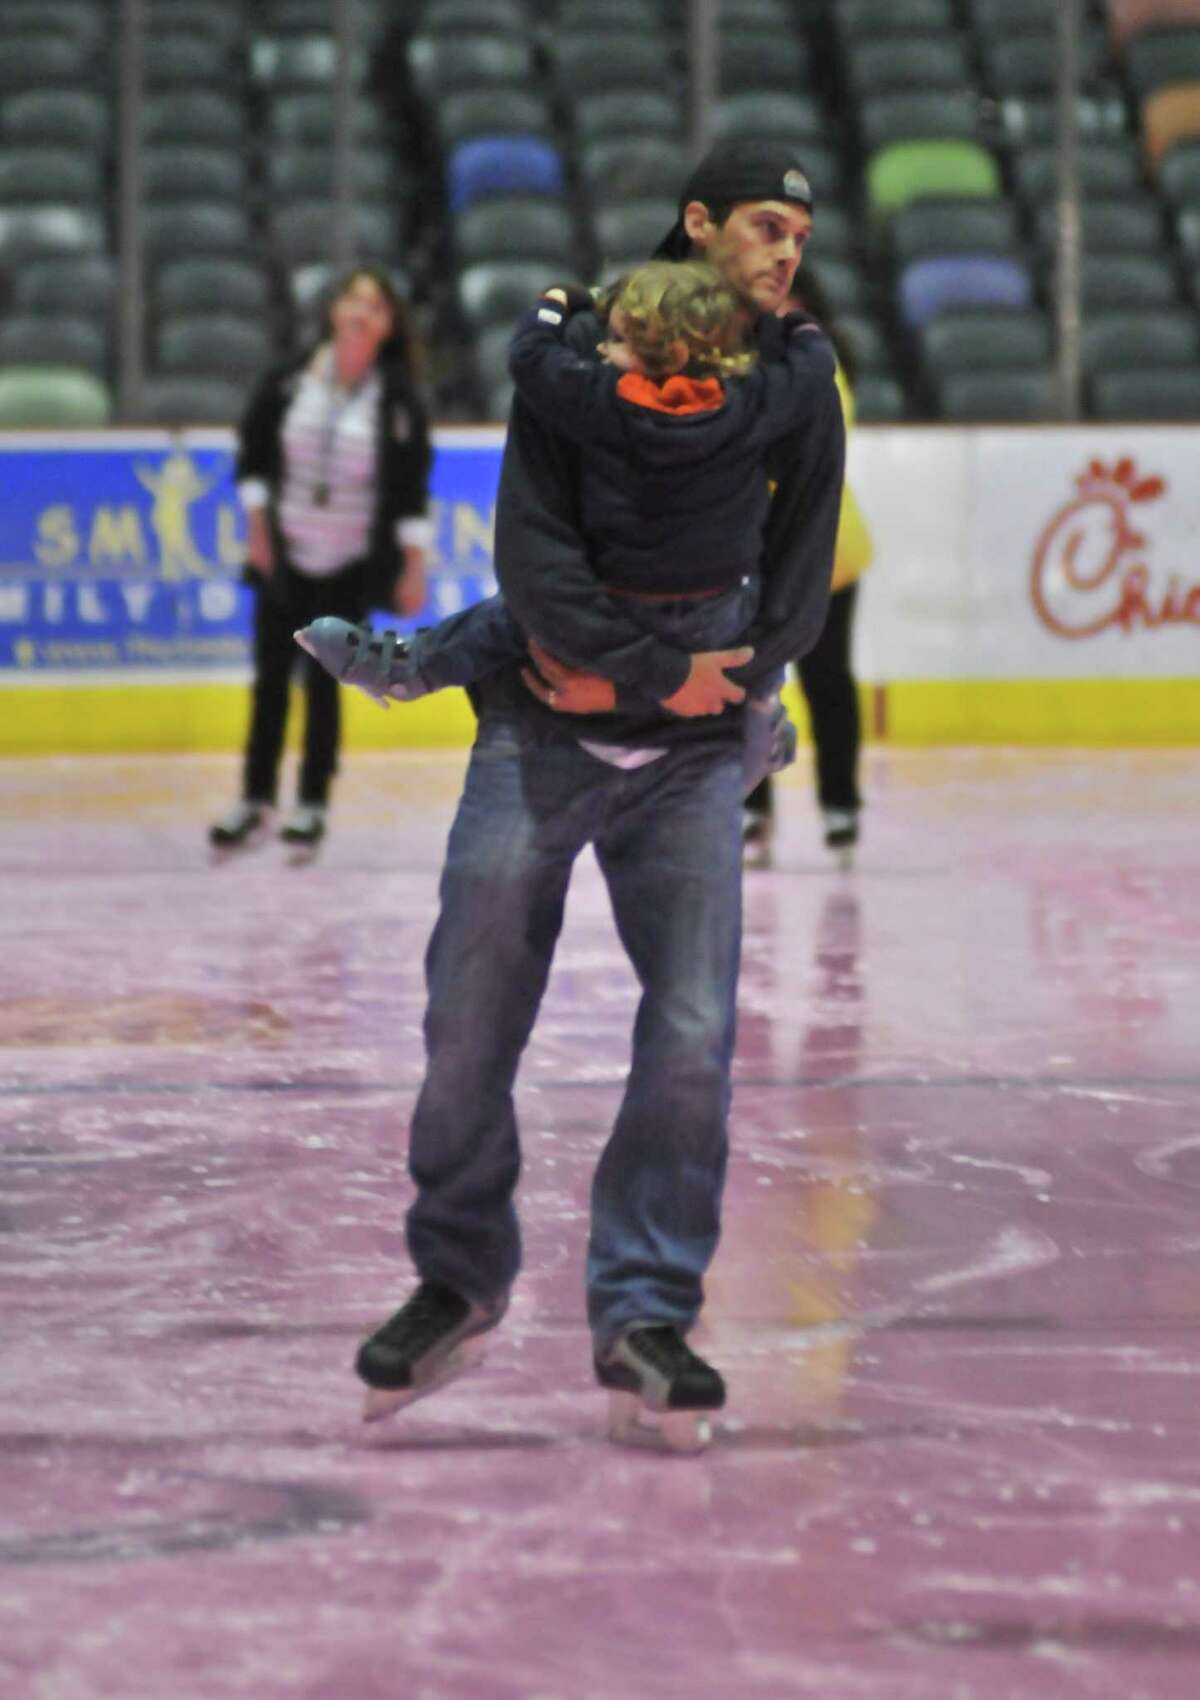 Paul DeYoung carries his 2-year-old son Liam while skating on the pink ice during the San Antonio Rampage Pink in the Rink Skate on Jan. 29. The ice at the AT&T Center is pink to commemorate breast cancer awareness.